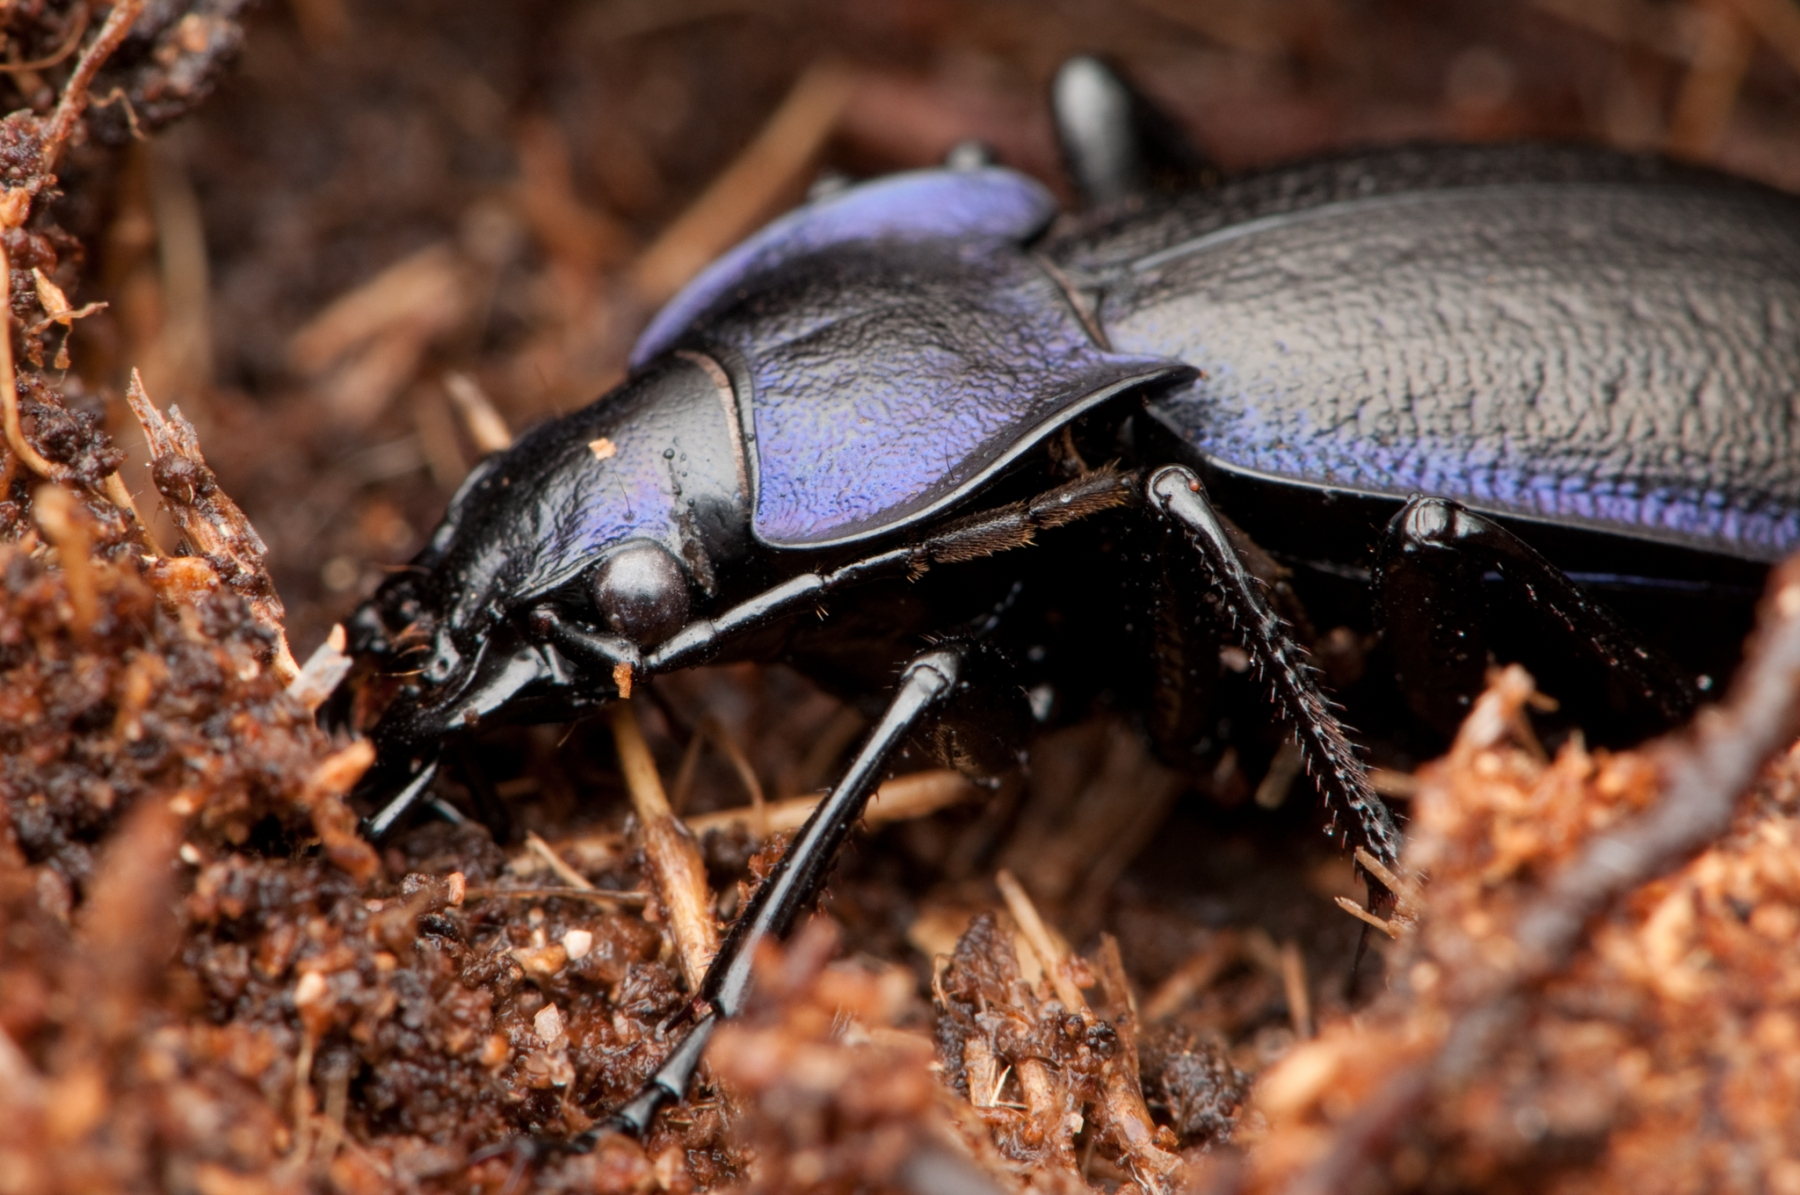 Carabus violaceus - Violet Ground Beetle, Sherwood Forest